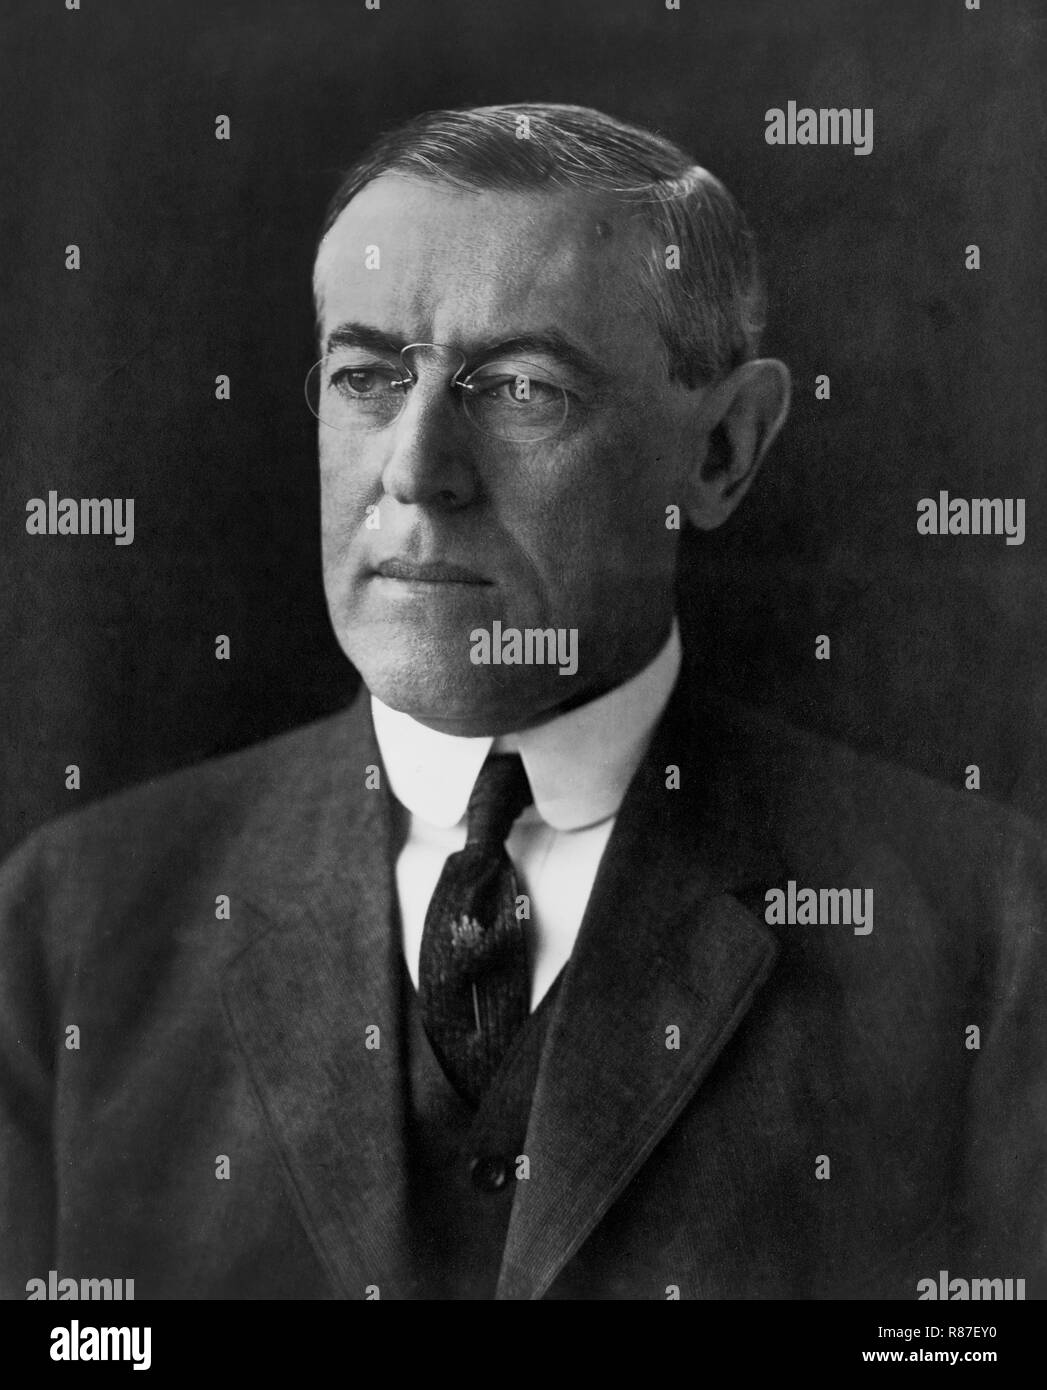 U.S. President-Elect Woodrow Wilson, Head and Shoulders Portrait, December 1912 - Stock Image